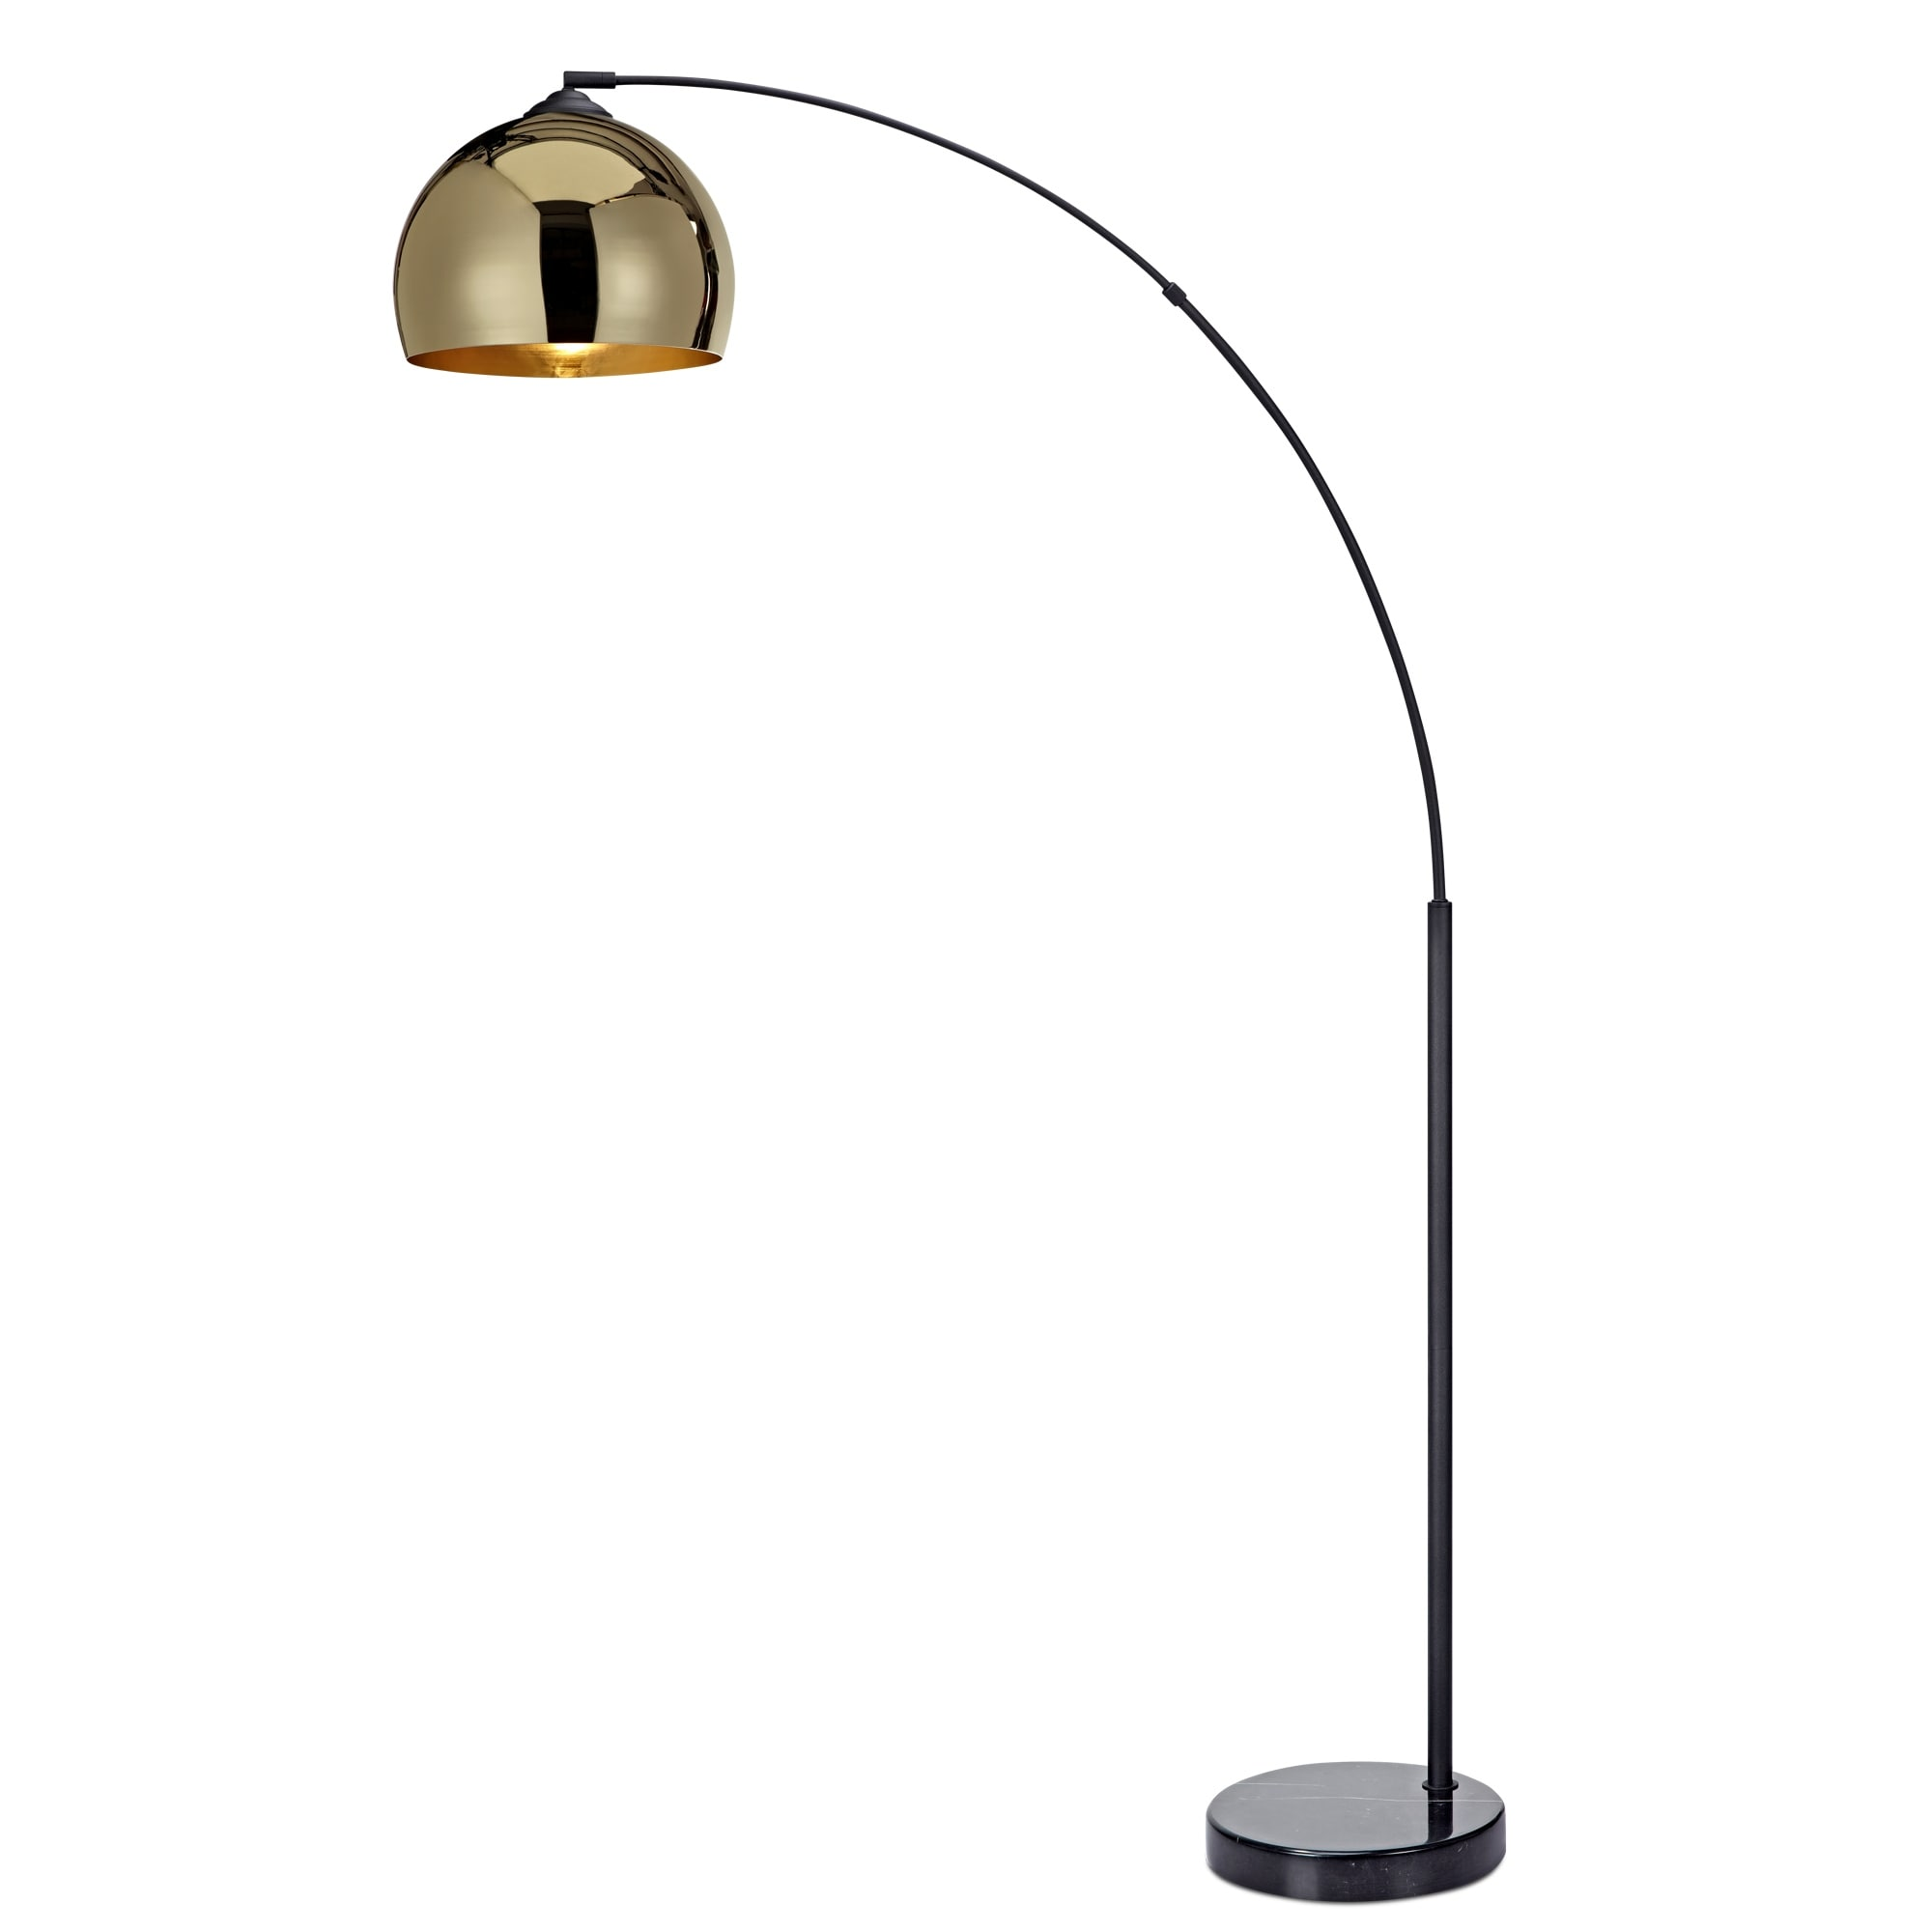 Image of: Shop Black Friday Deals On Versanora Arquer Arc Floor Lamp With Gold Shade And Black Marble Base Overstock 11607882